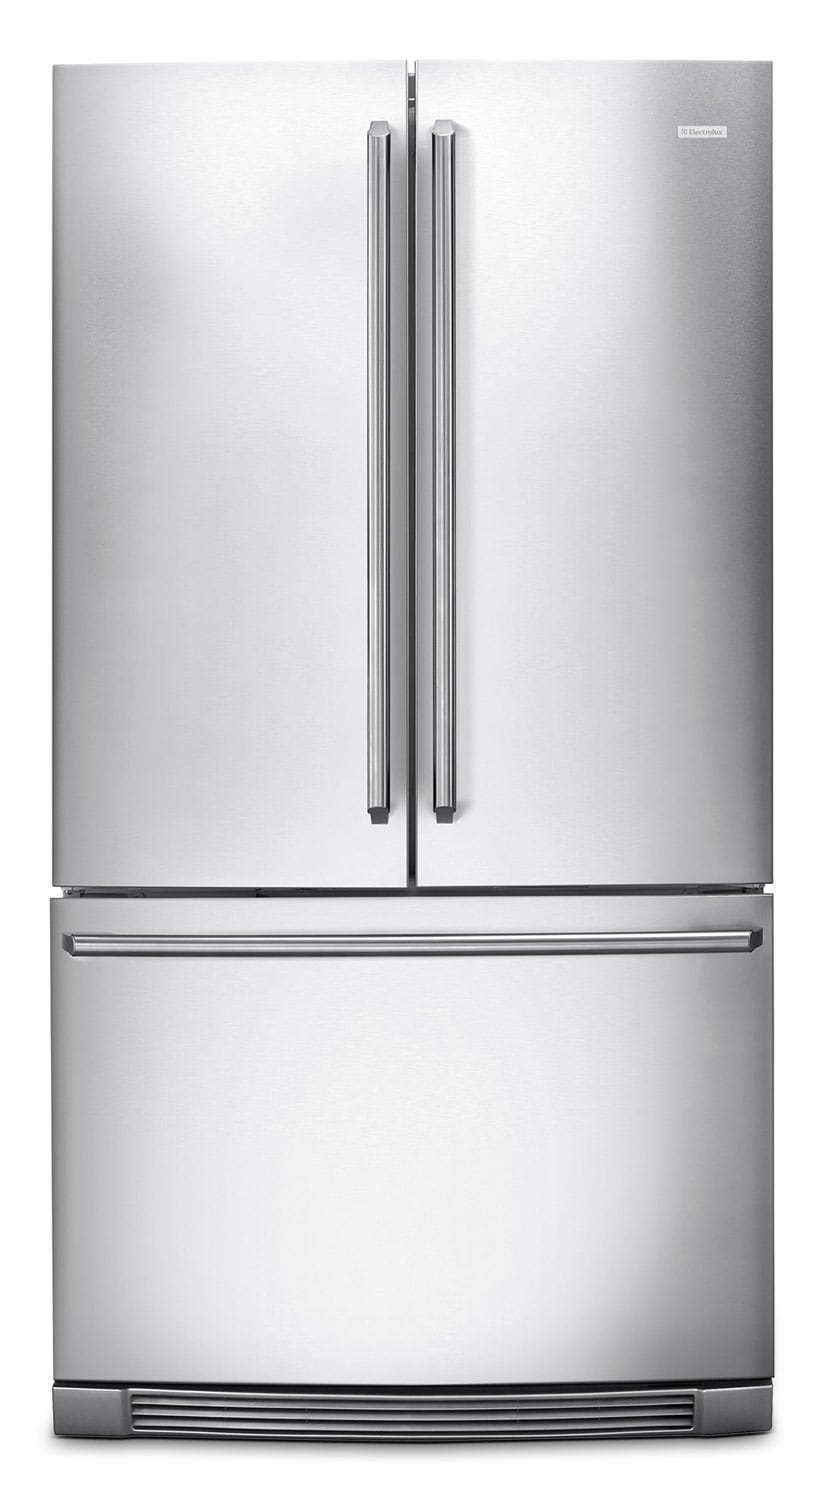 Refrigerators and Freezers - Electrolux Stainless Steel Counter-Depth French Door Refrigerator (22.51 Cu. Ft.) - EI23BC80KS